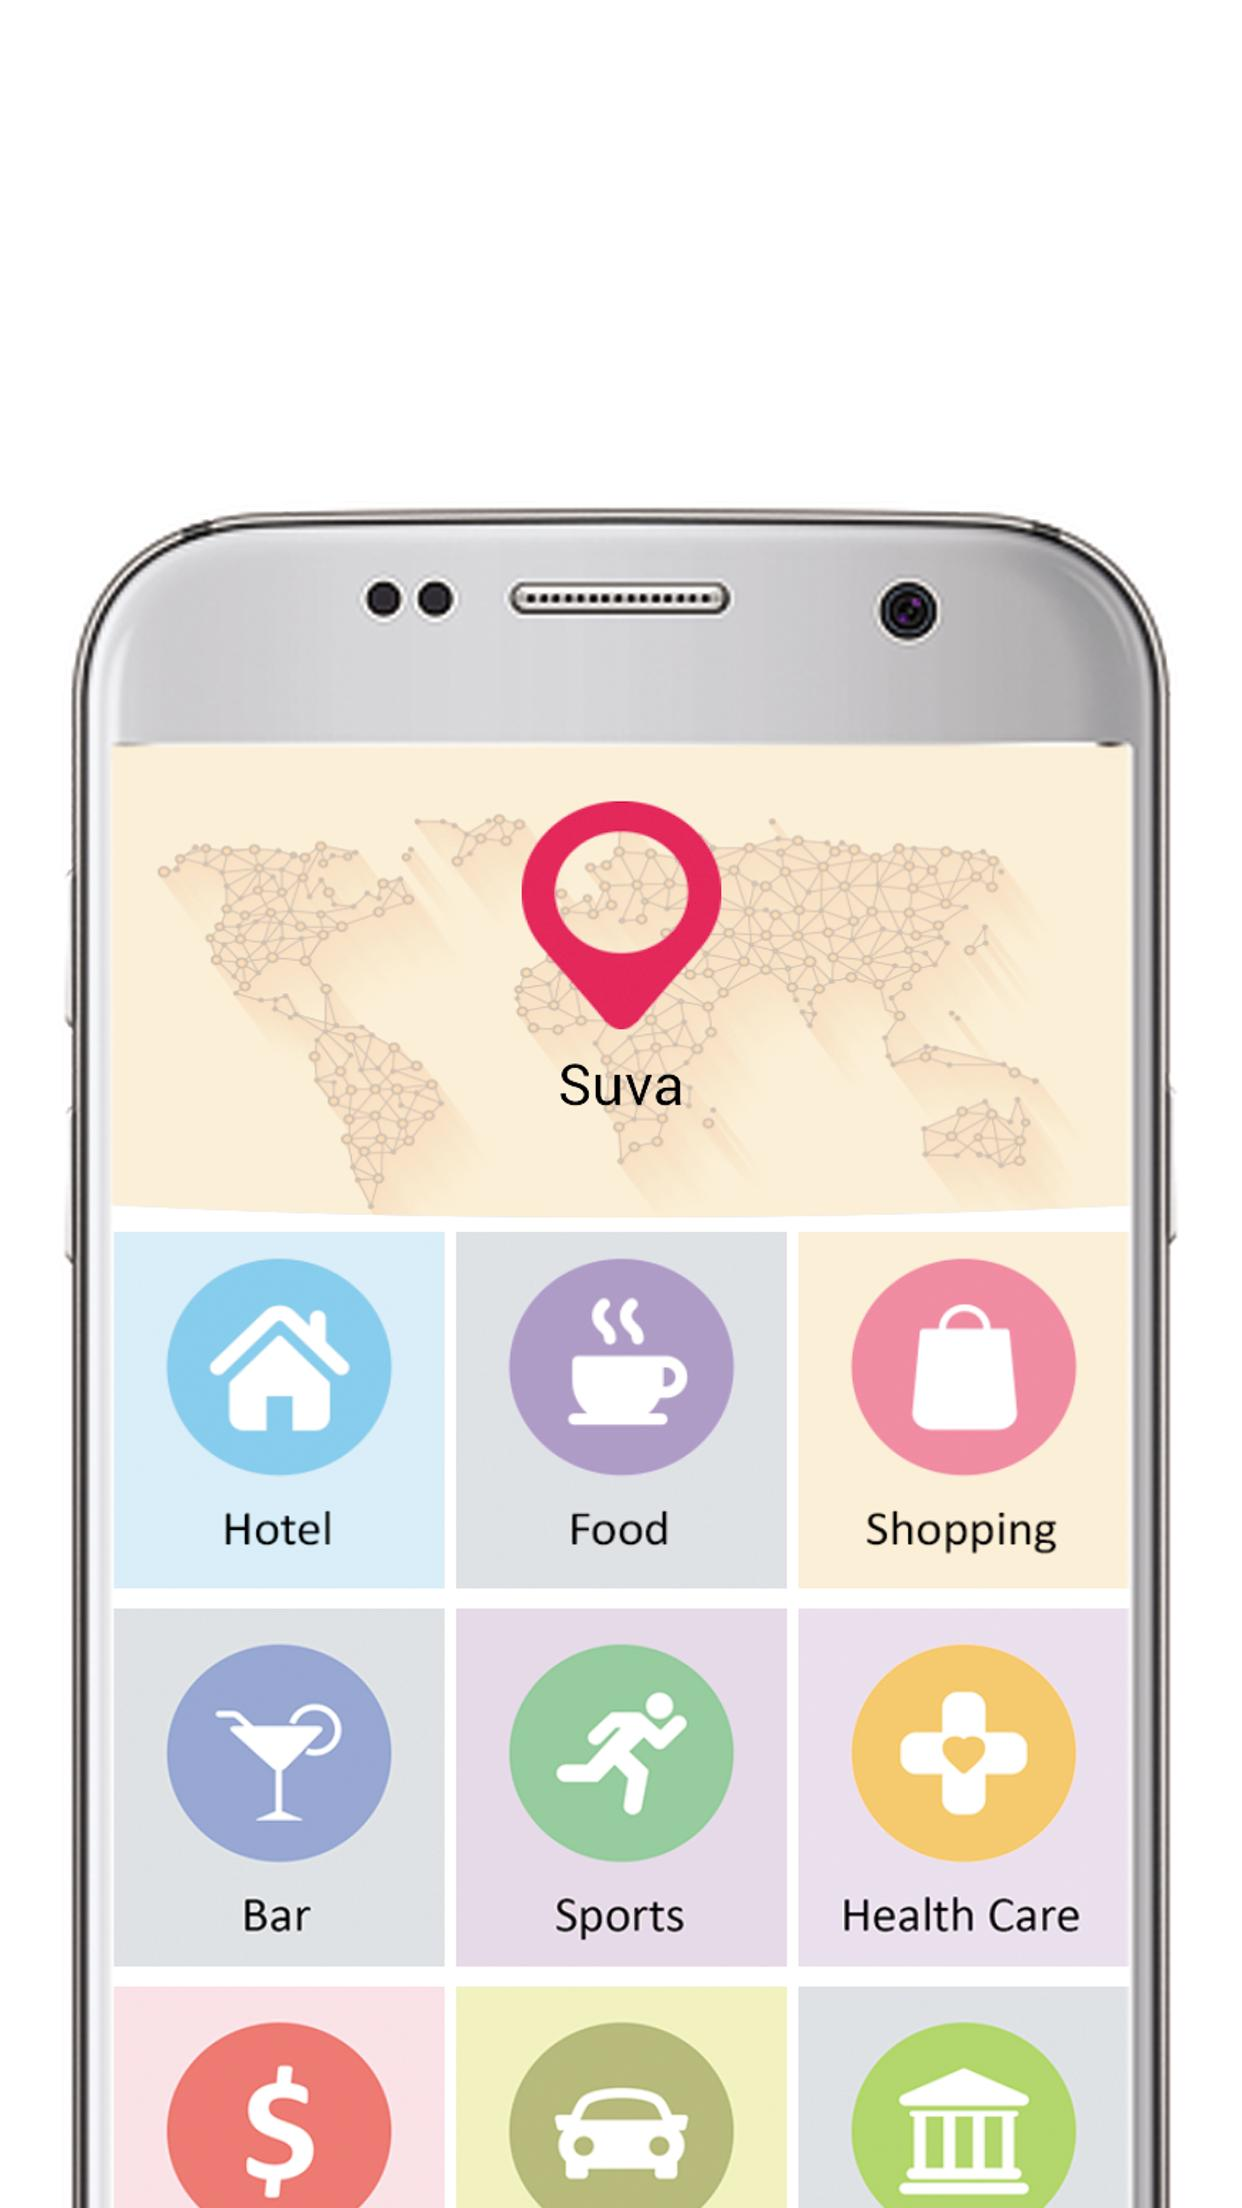 SUVA, Fiji - Free Travel Guide App for Android - APK Download